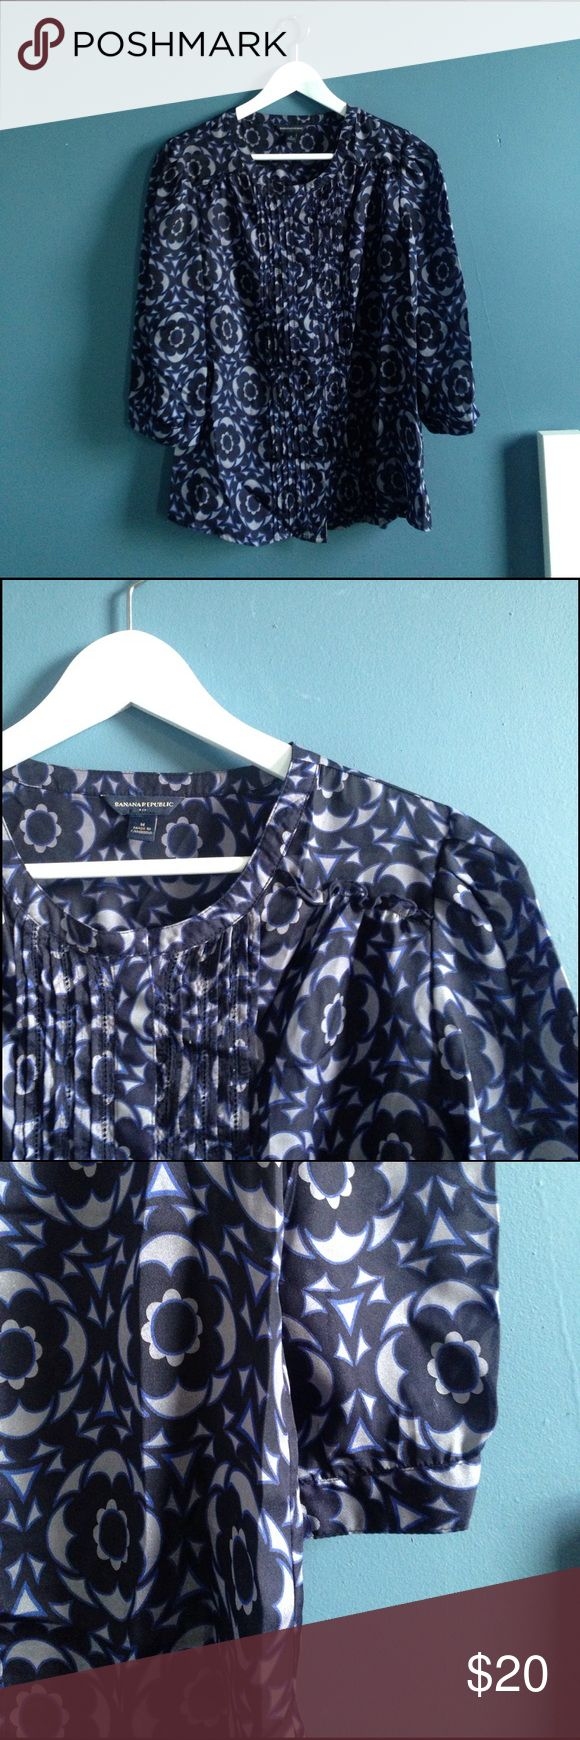 Banana Republic blue & gray geometric floral tunic This Medium Banana Republic tunic will keep you comfortable, clean, and sharp looking in any setting. 3/4 sleeves. Perfect for the transition to Spring if you wear it with leggings. Banana Republic Tops Blouses